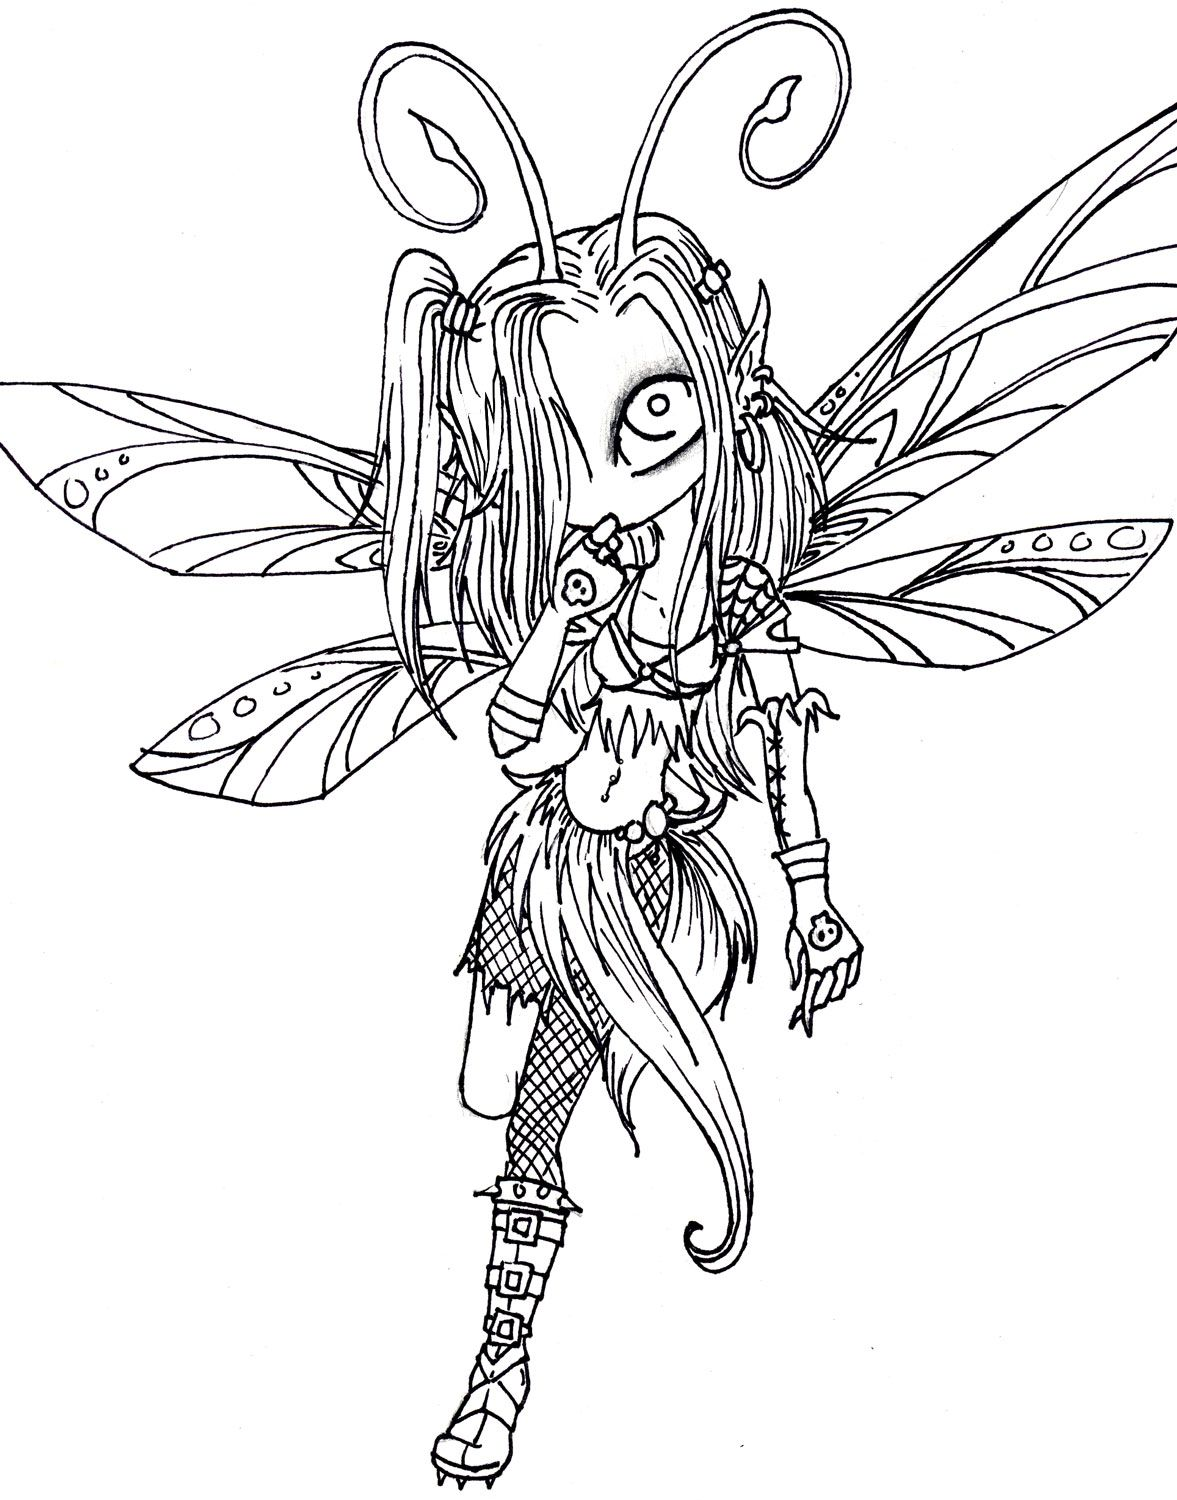 Coloring Pages For Adults Unique Fantasy Google Search Fairy Coloring Pages Fairy Coloring Fairy Coloring Book